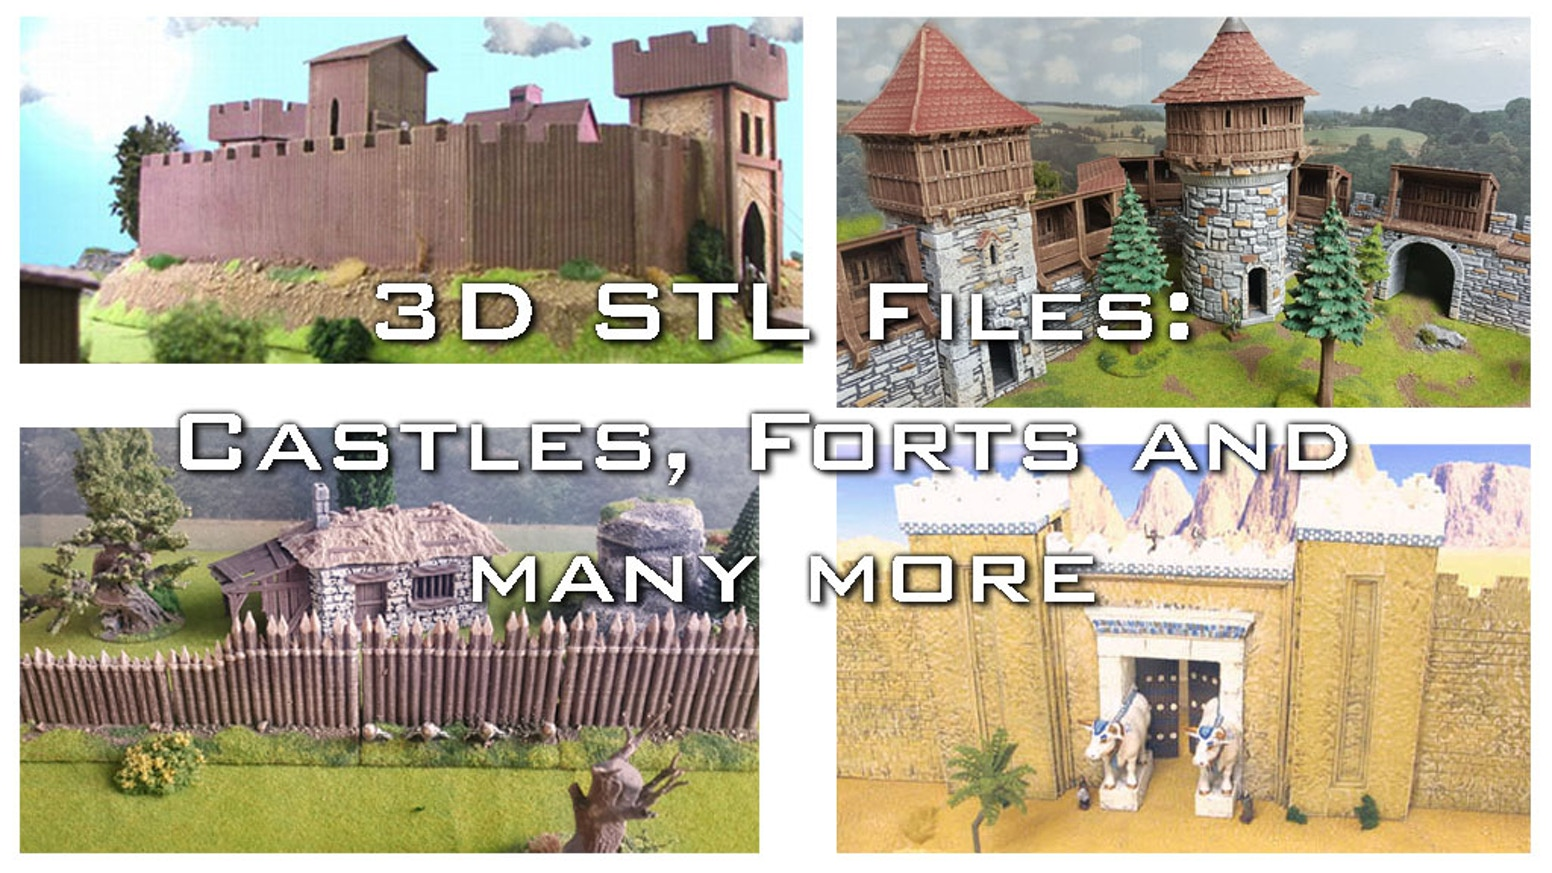 dark age, fantasy and medieval castle and forts parts for your 3D home printer